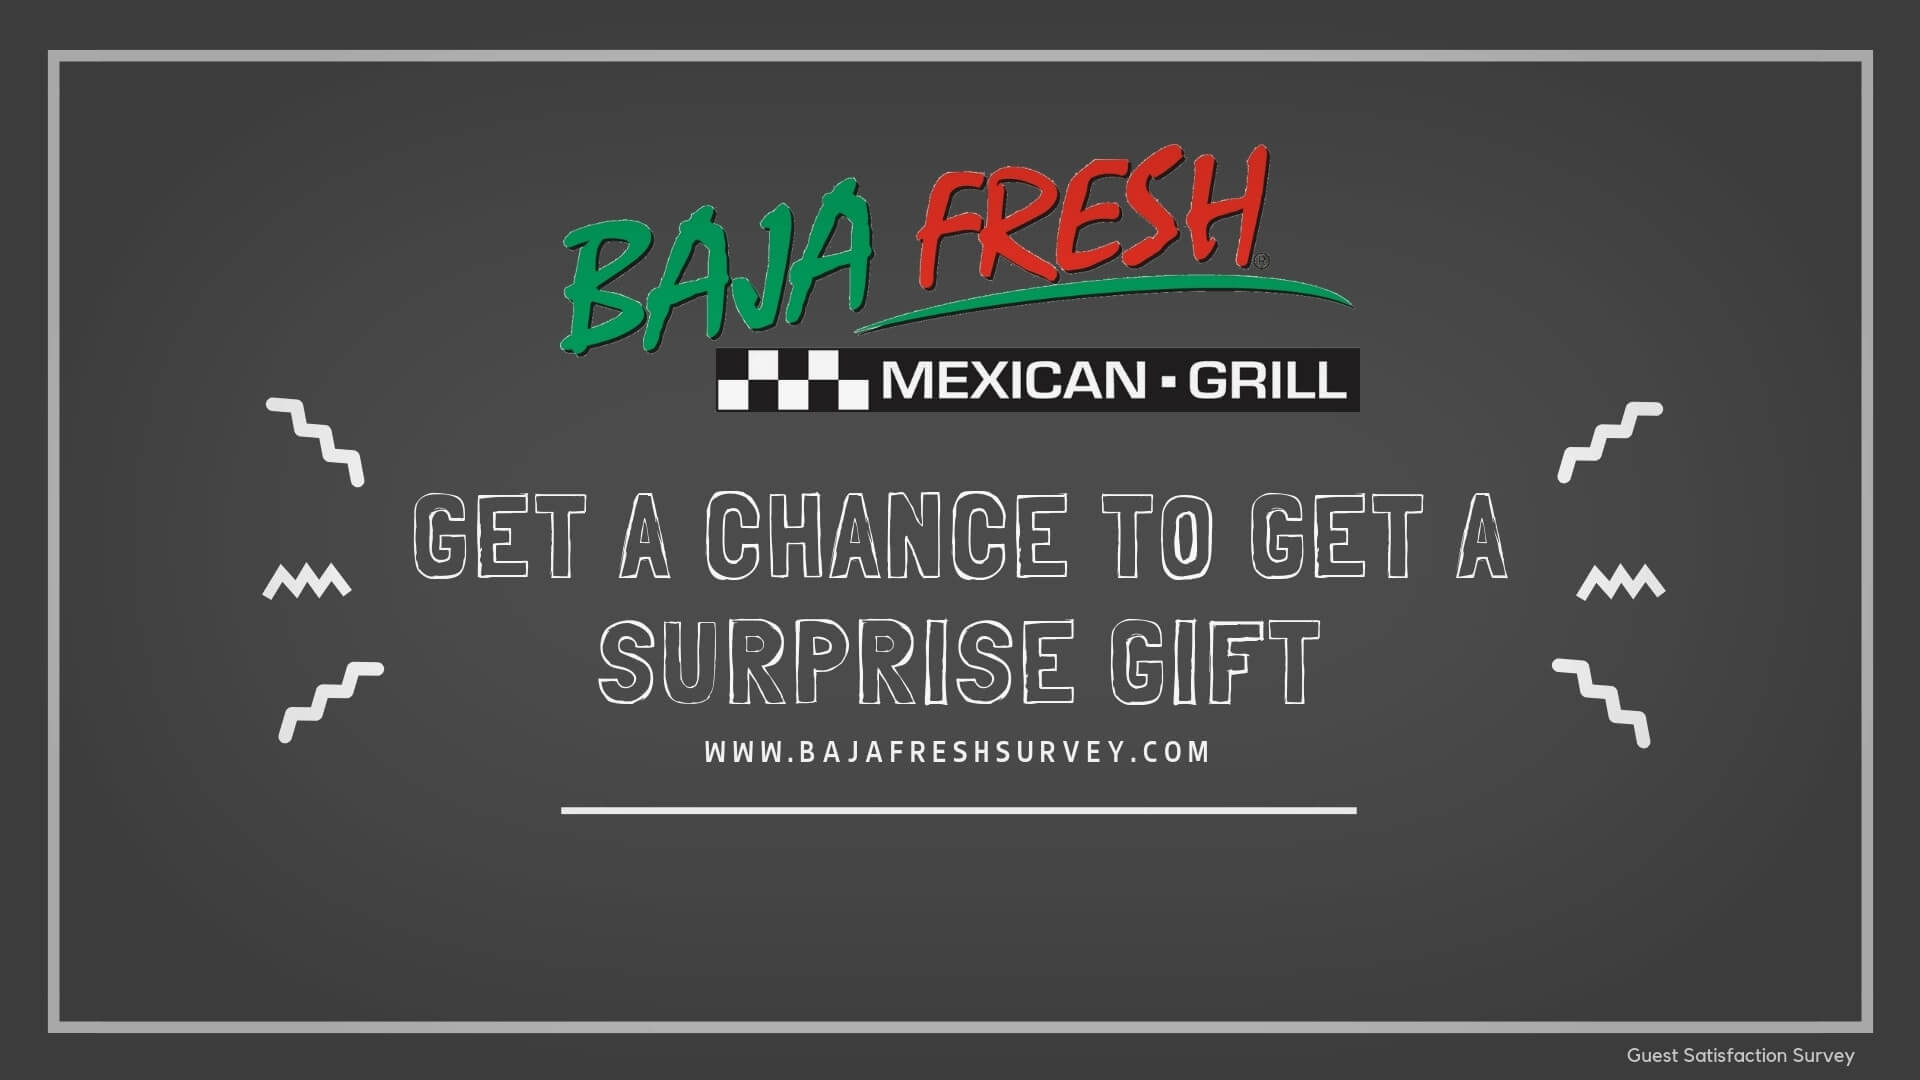 Baja Fresh Survey | Take Survey To Win A Surprise Gift